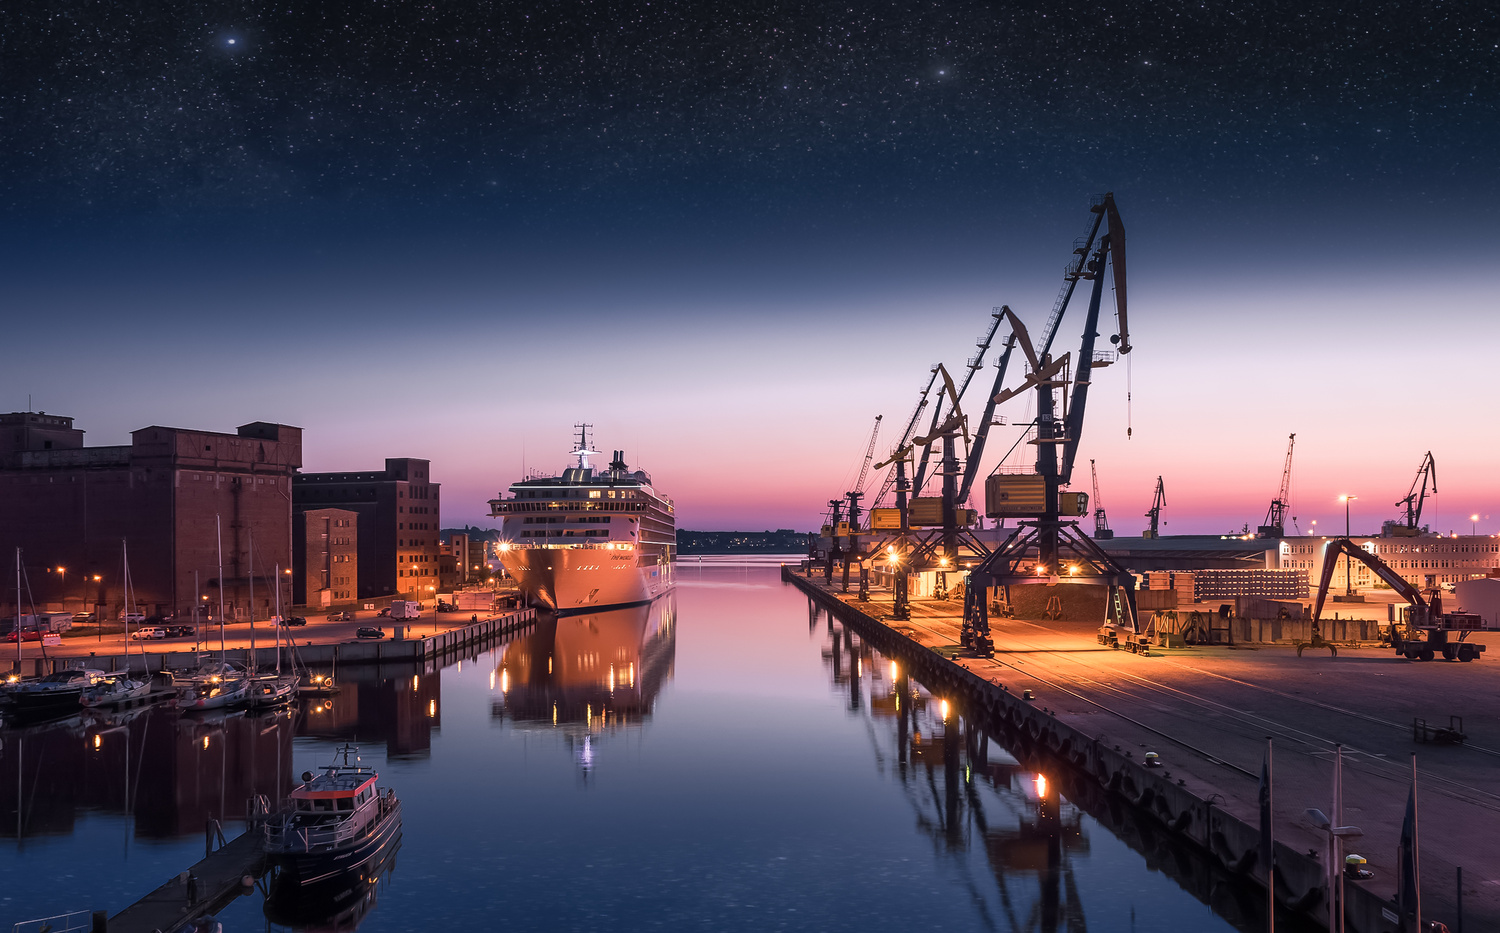 Star Harbor by nick s